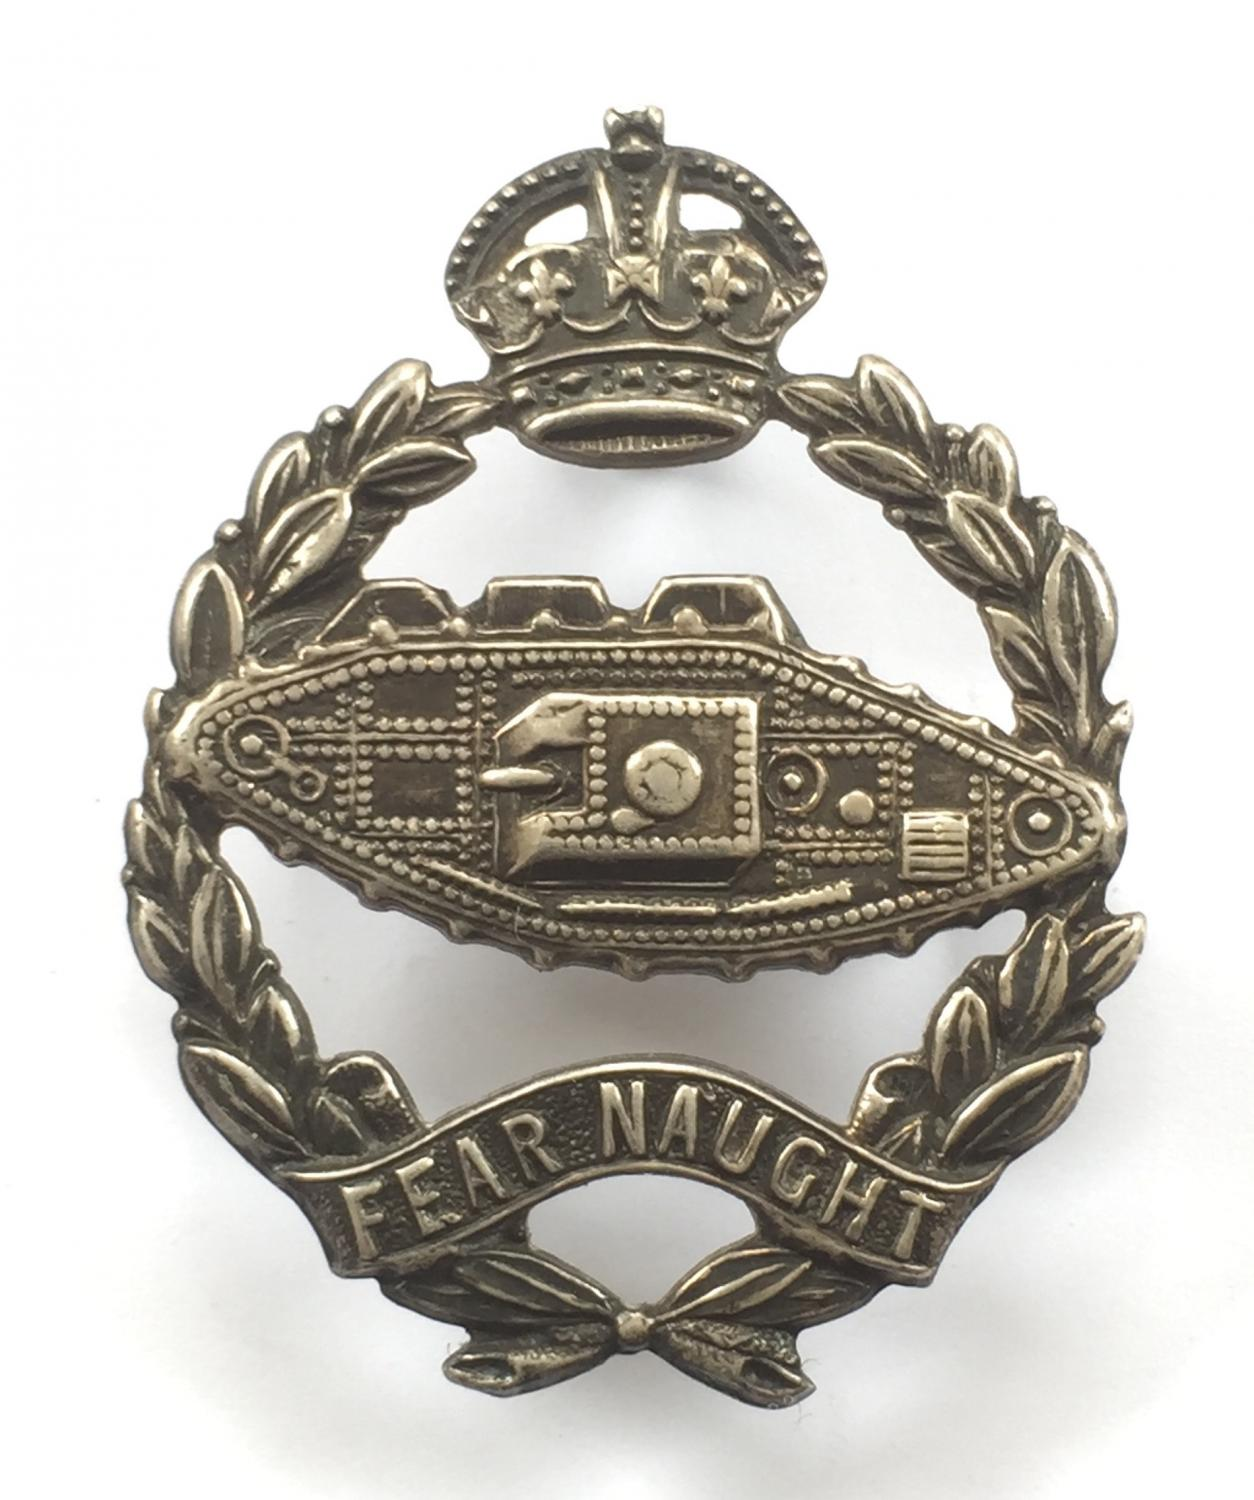 Royal Tank Corps Officer's Sterling silver beret badge